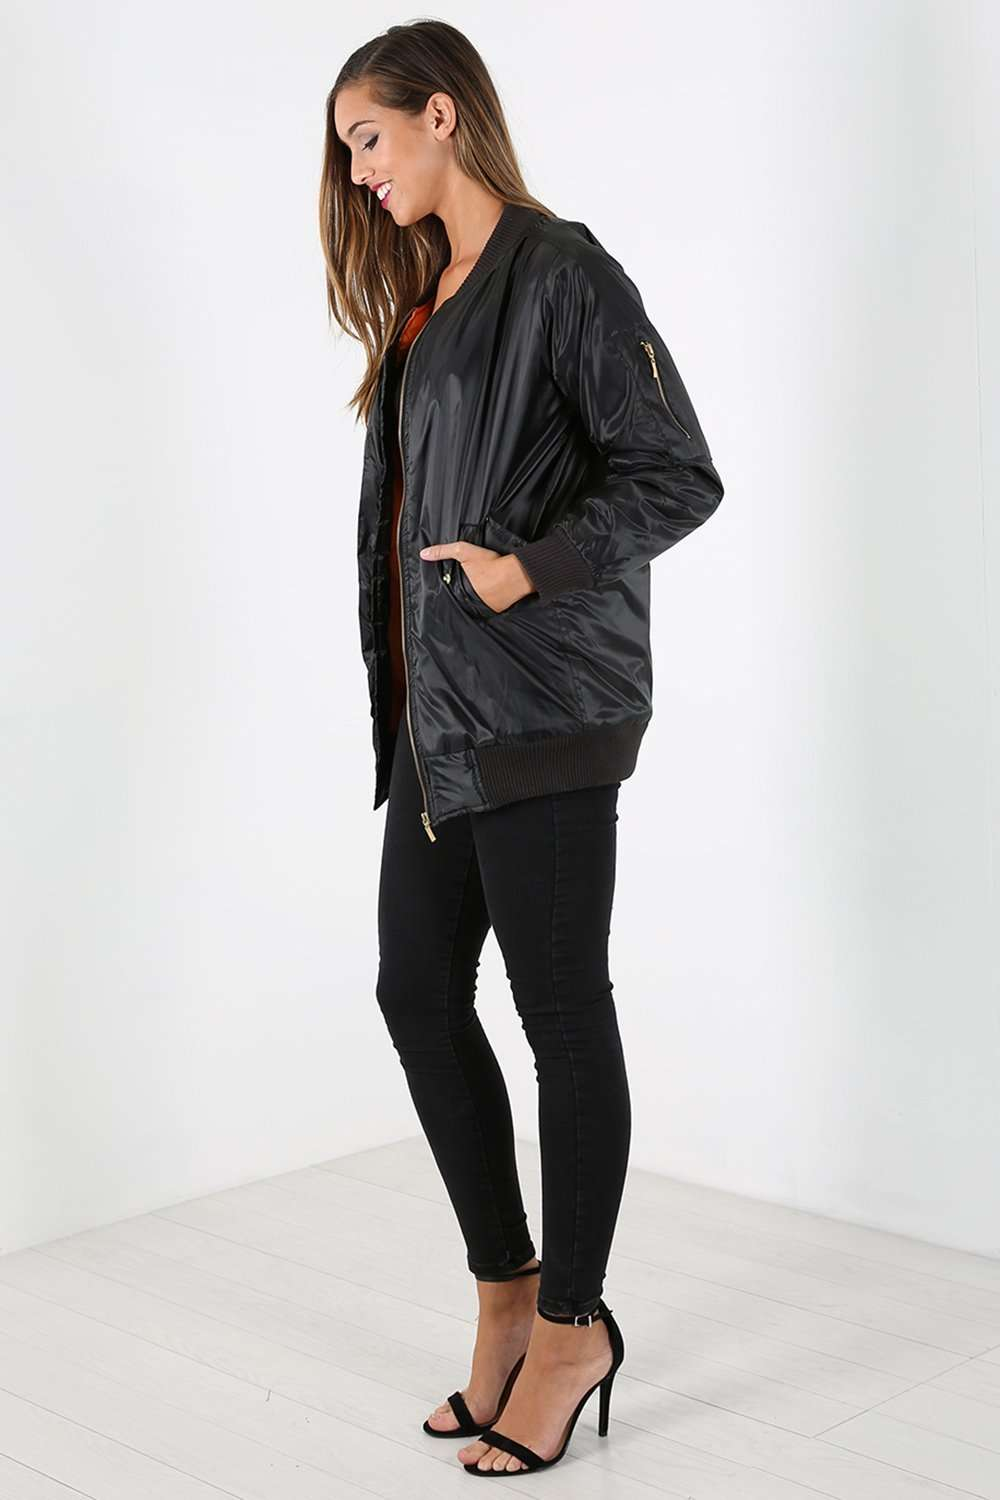 Kiera Long Sleeve Oversized Bomber Jacket - bejealous-com